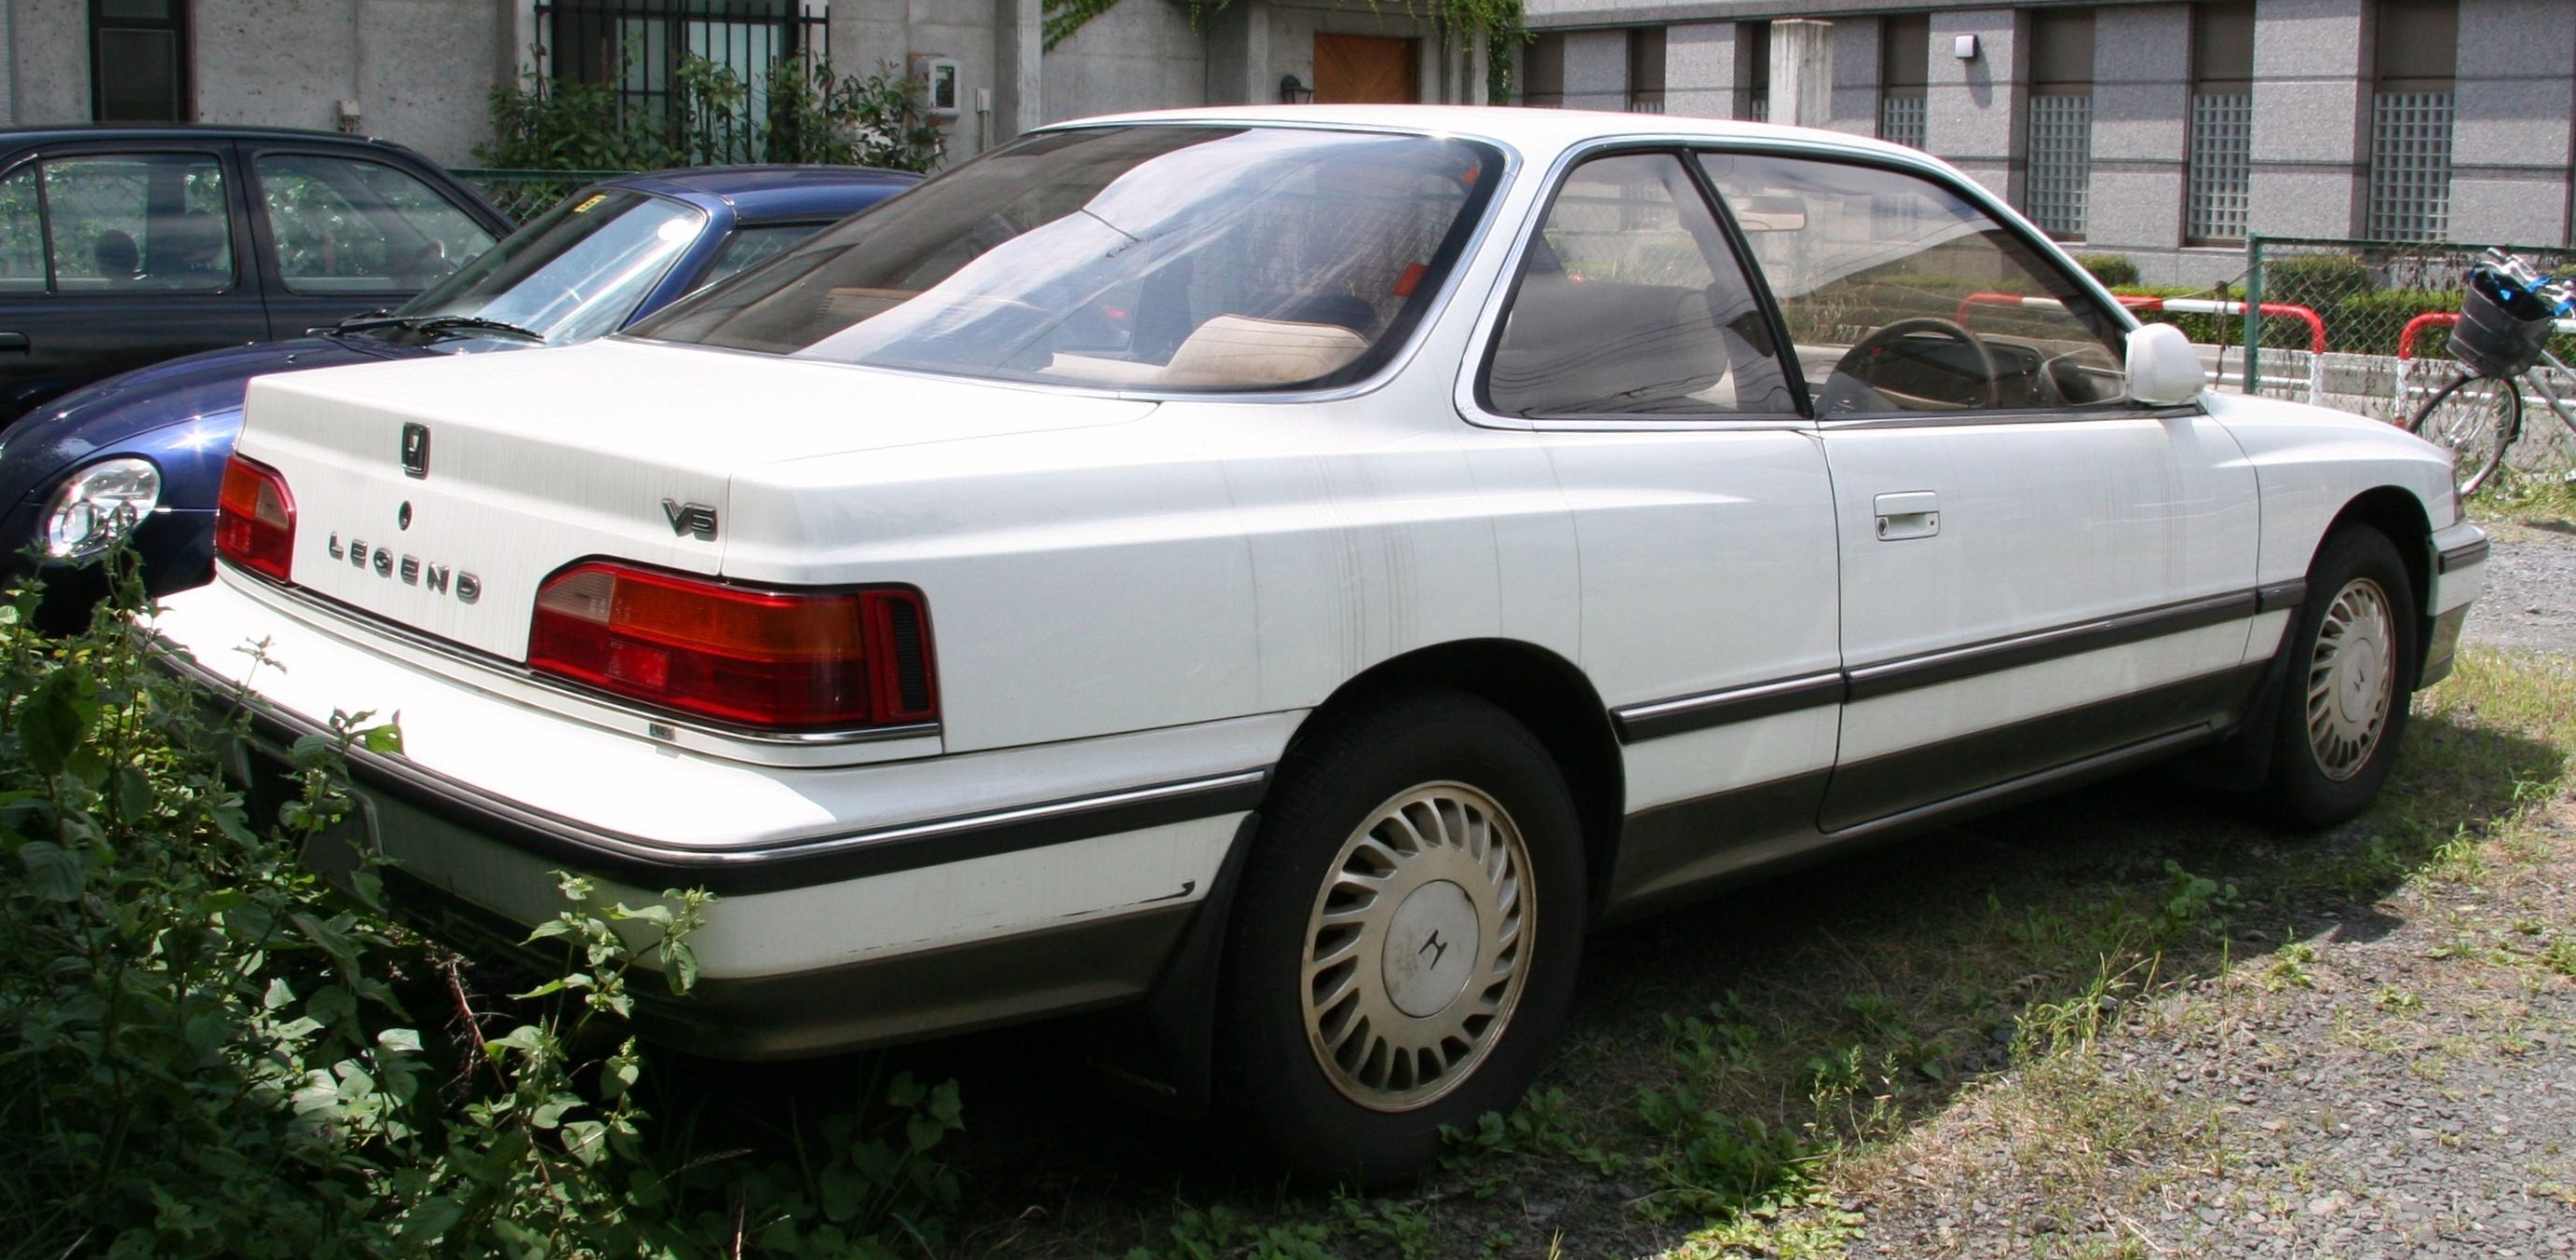 1995 Honda Legend ii coupe (ka8) - pictures, information and specs - Auto-Database.com